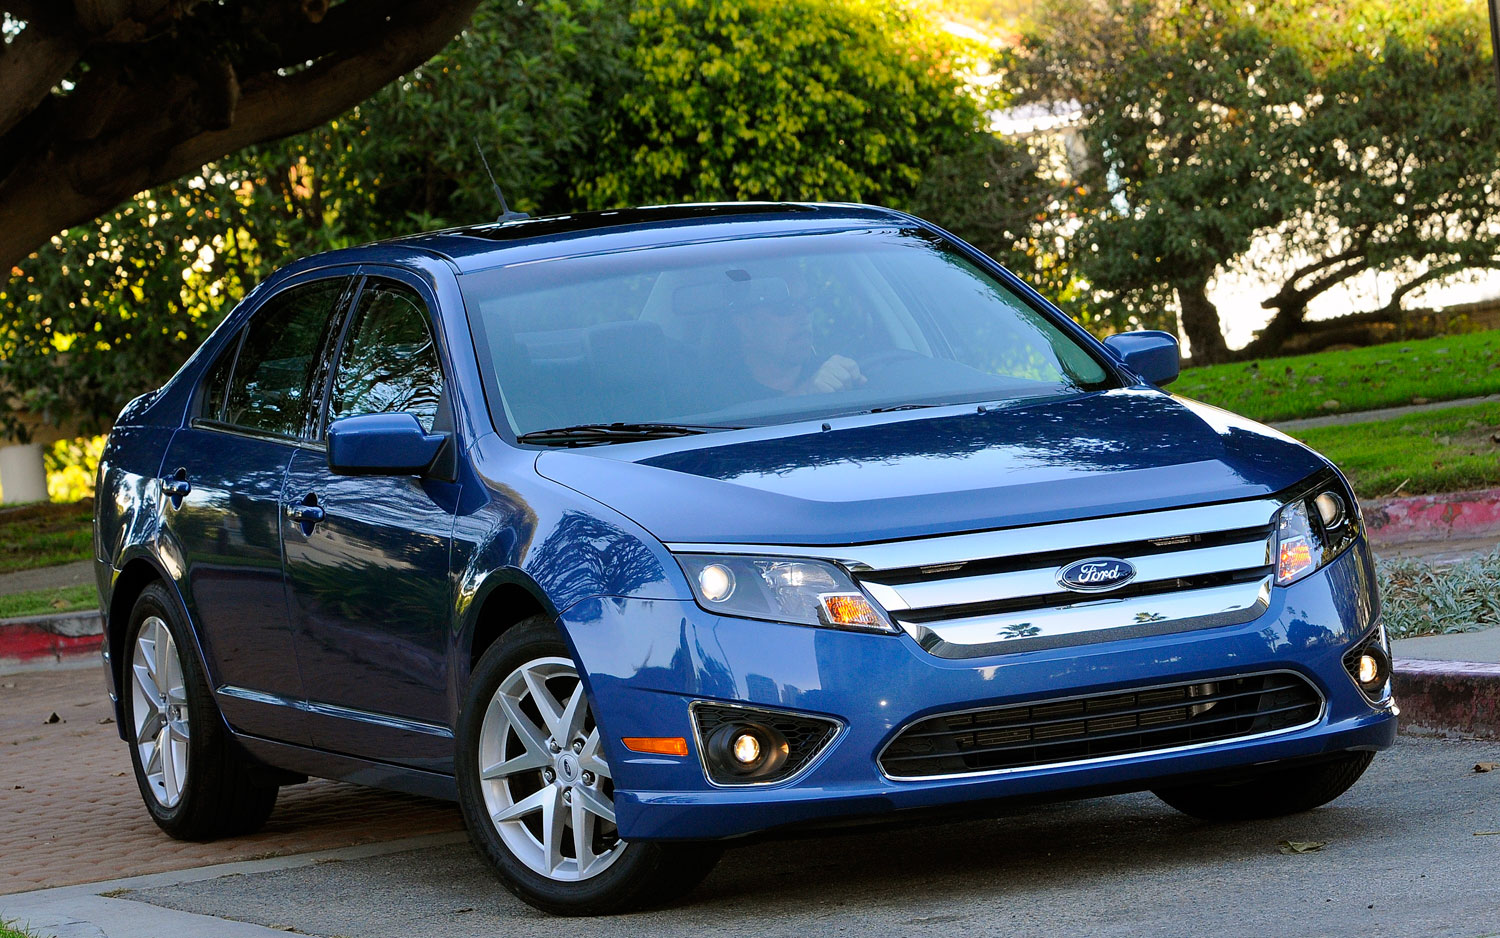 2010 Ford Fusion front three quarters